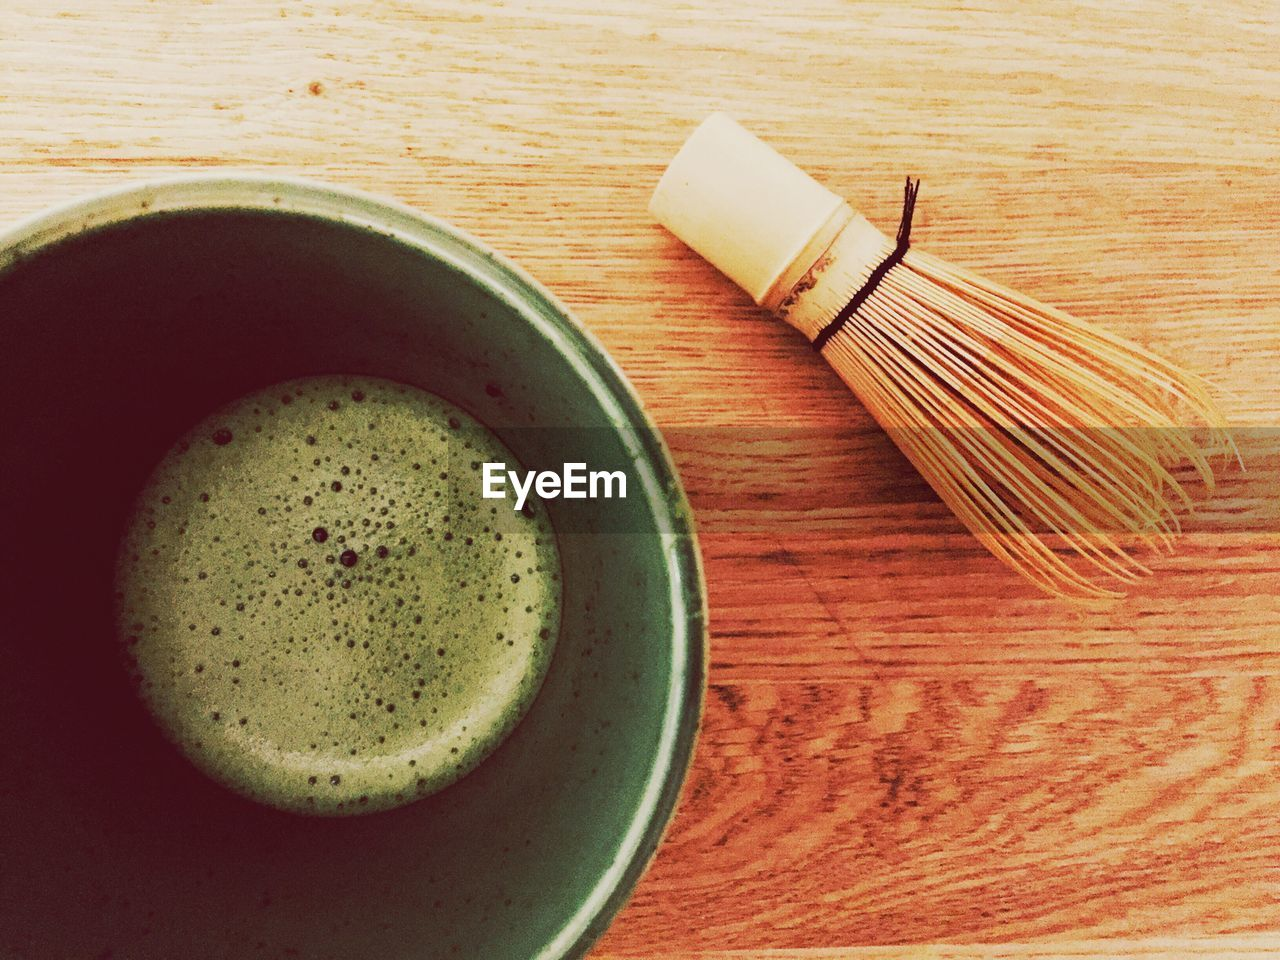 drink, food and drink, table, freshness, refreshment, healthy eating, directly above, no people, close-up, indoors, matcha tea, frothy drink, green tea, food, ready-to-eat